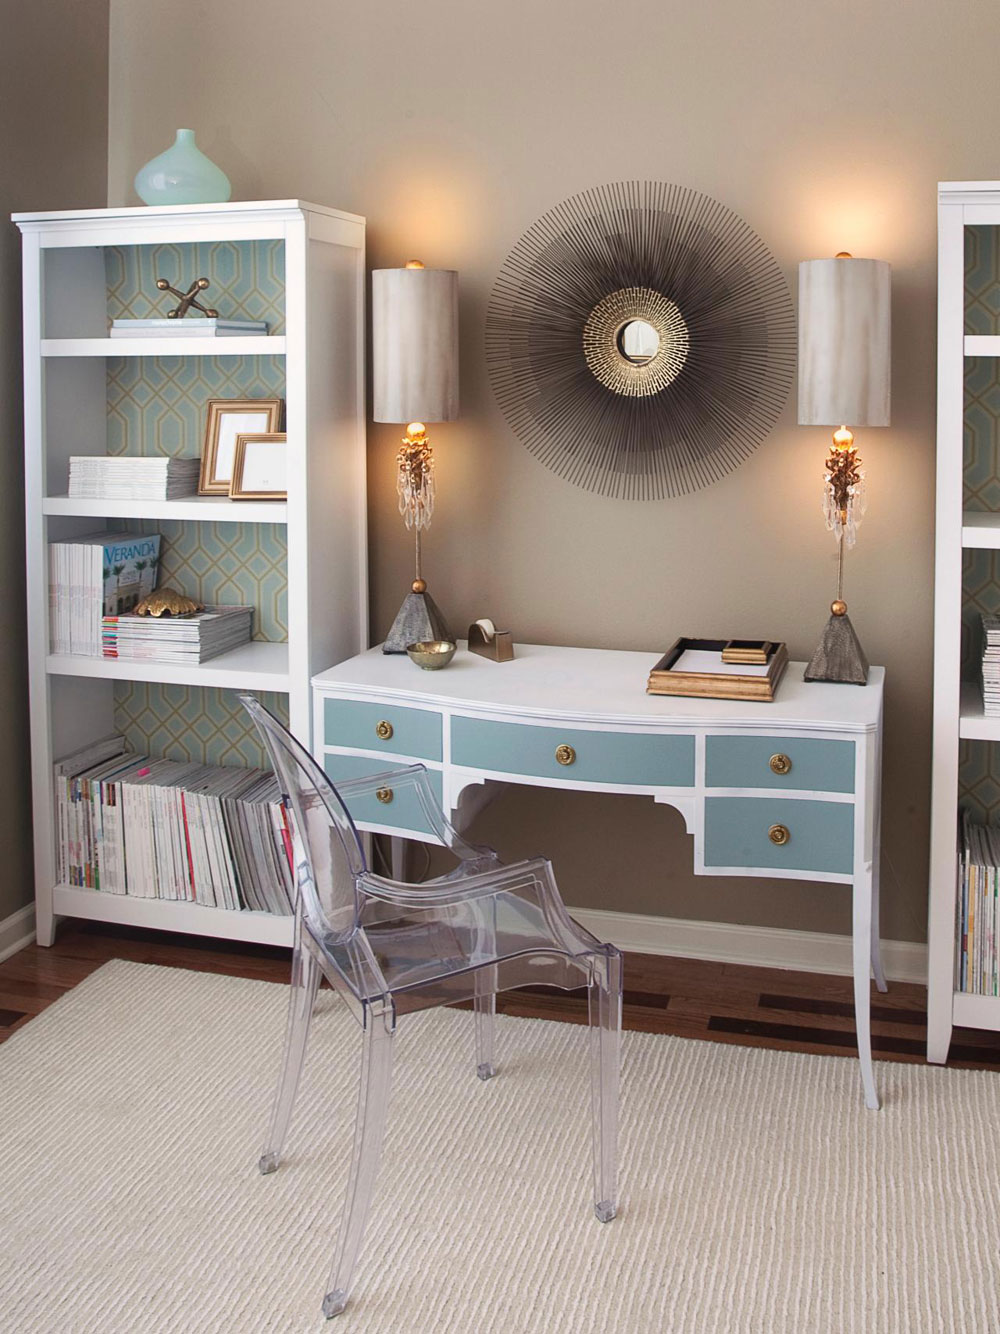 Astounding Great Home Office Design Ideas For The Work From Home People Largest Home Design Picture Inspirations Pitcheantrous